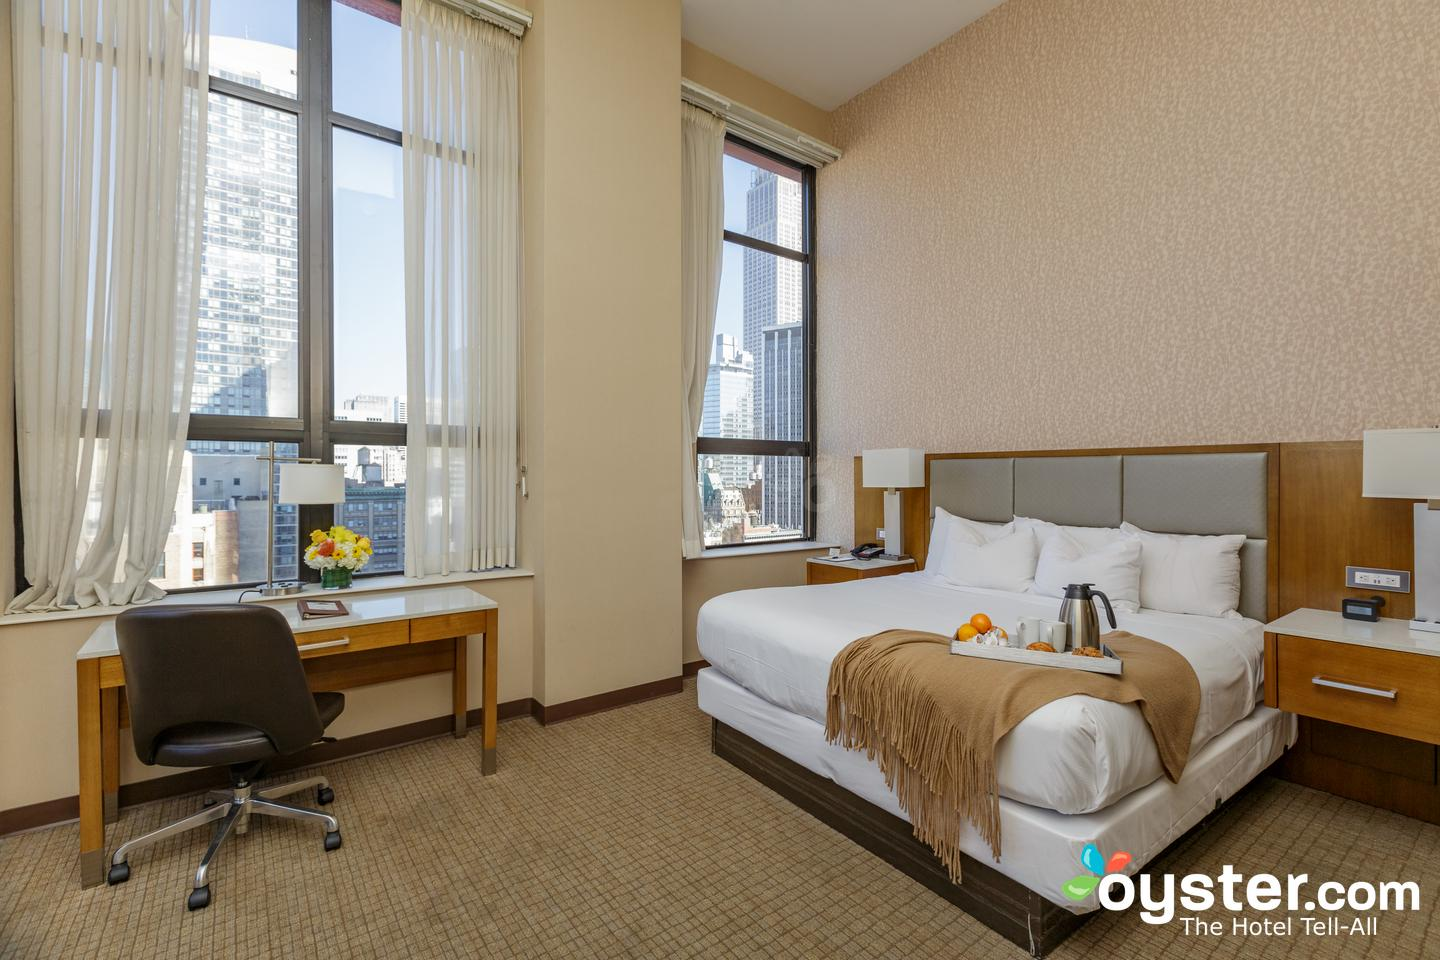 Doubletree By Hilton Hotel New York City Chelsea Review What To Really Expect If You Stay